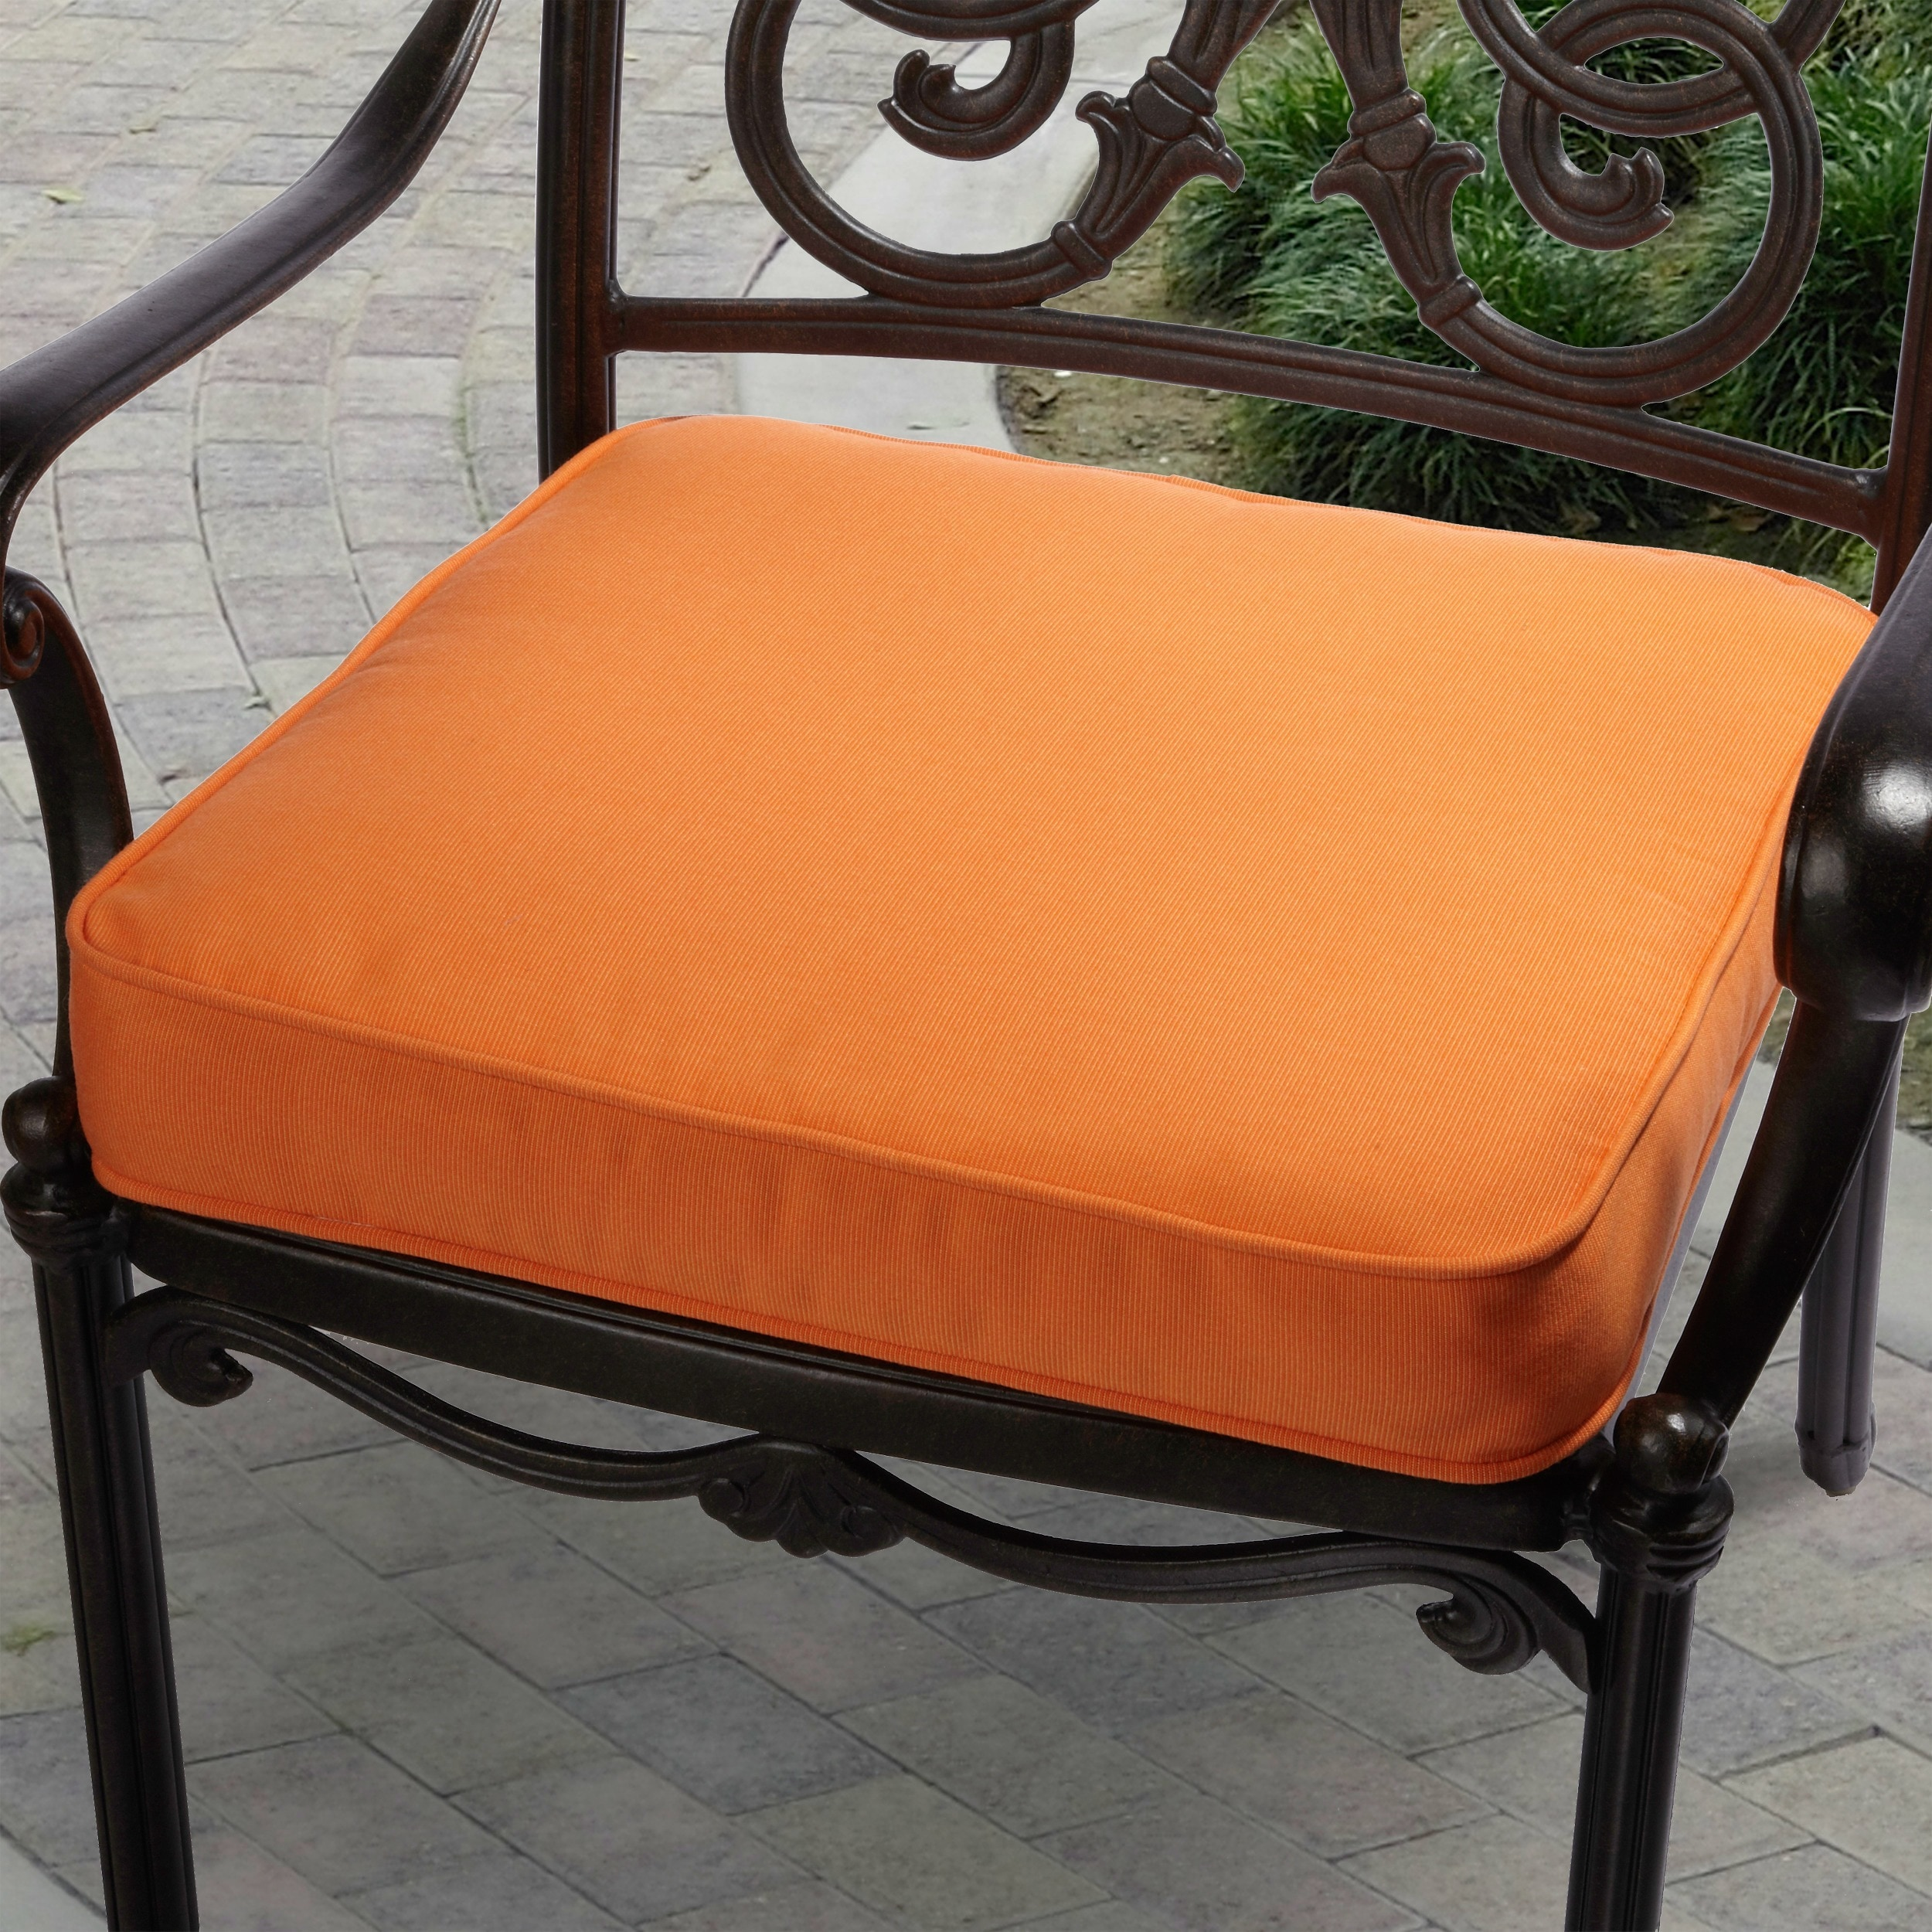 Sunbrella Fabric Patio Furniture.Indoor Outdoor Textured Bright 19 Inch Chair Cushion With Sunbrella Fabric